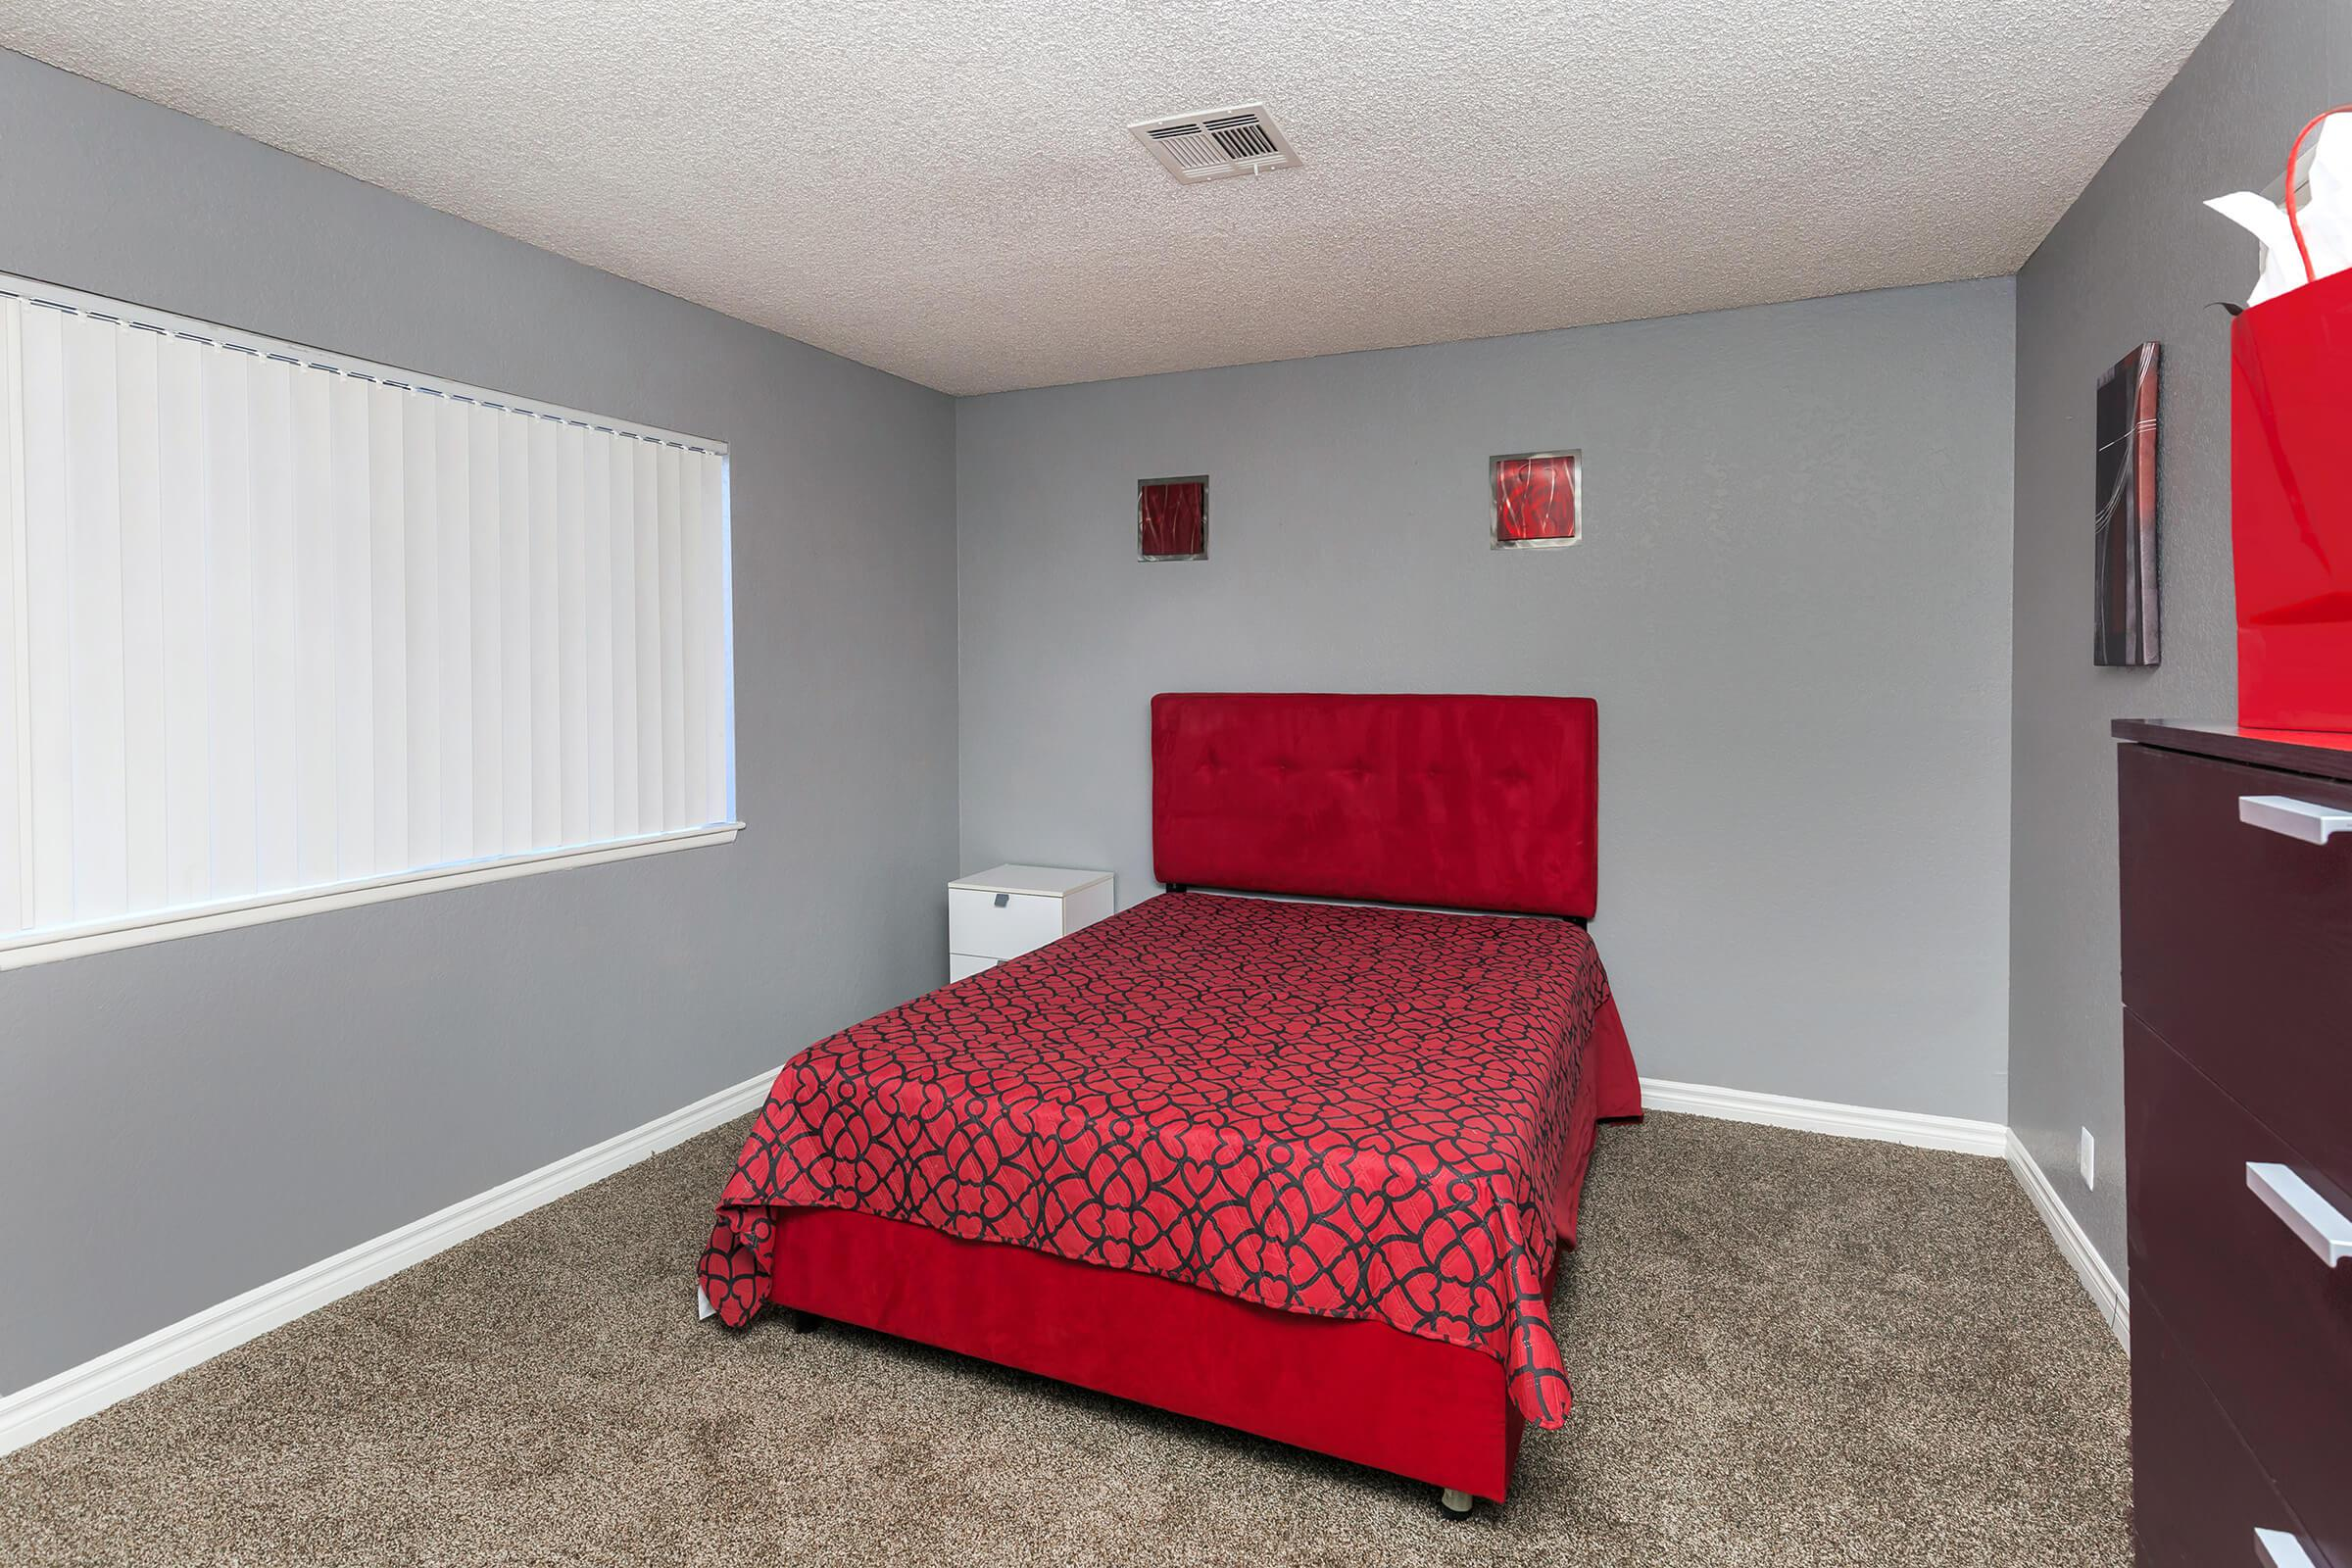 a bedroom with a red blanket